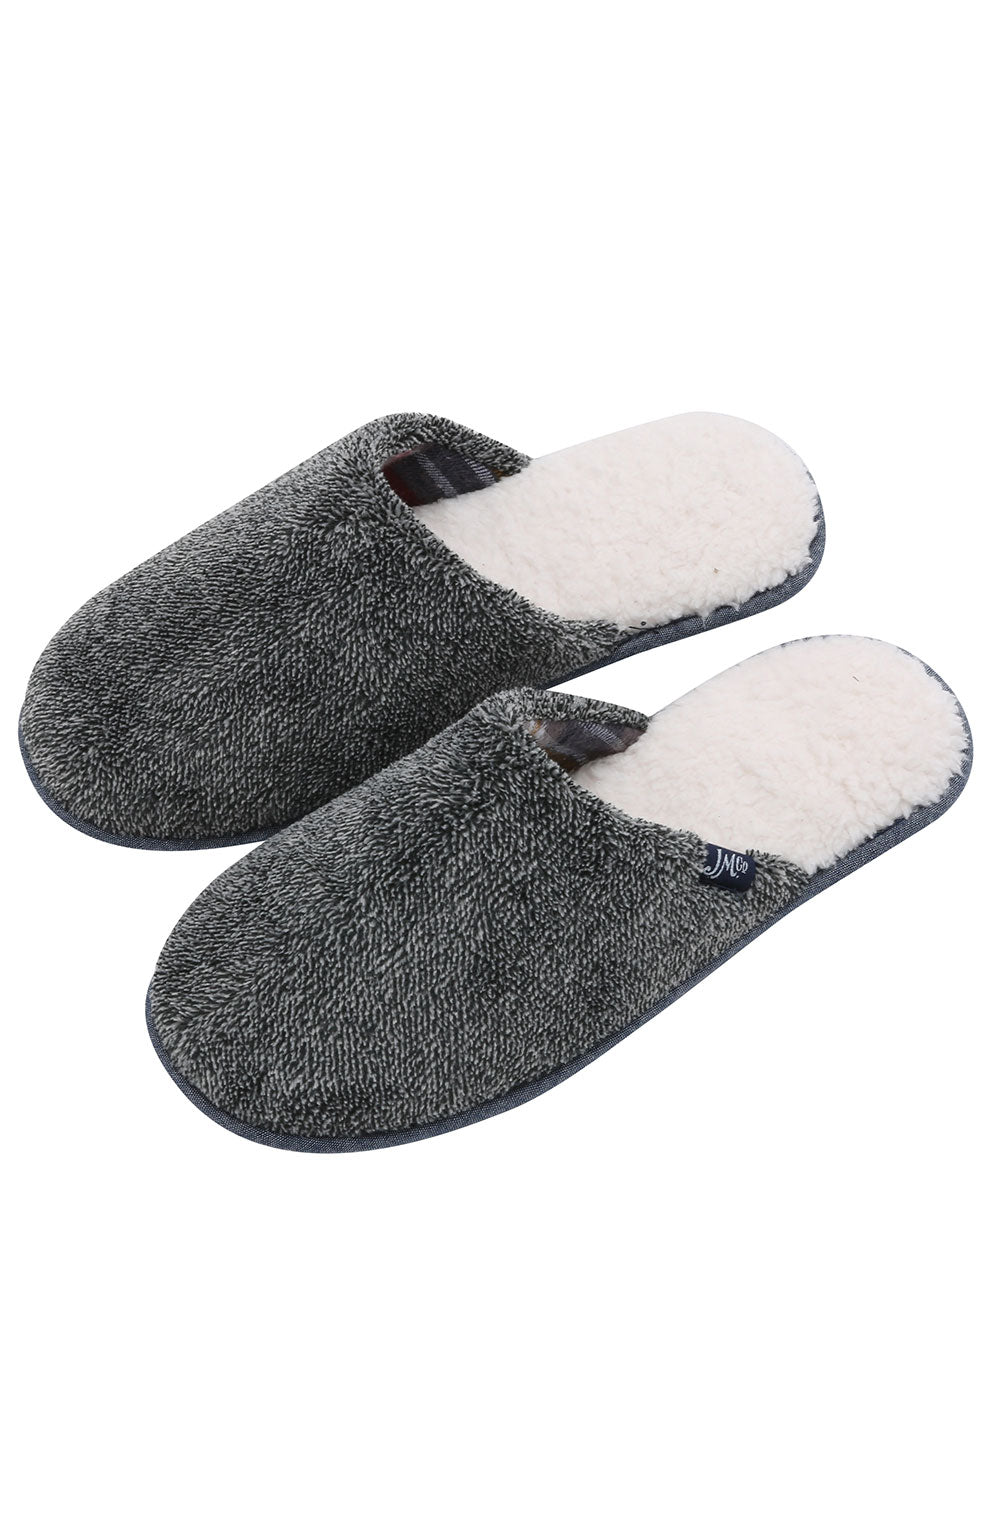 Grey Sherpa Slipper with Memory Foam